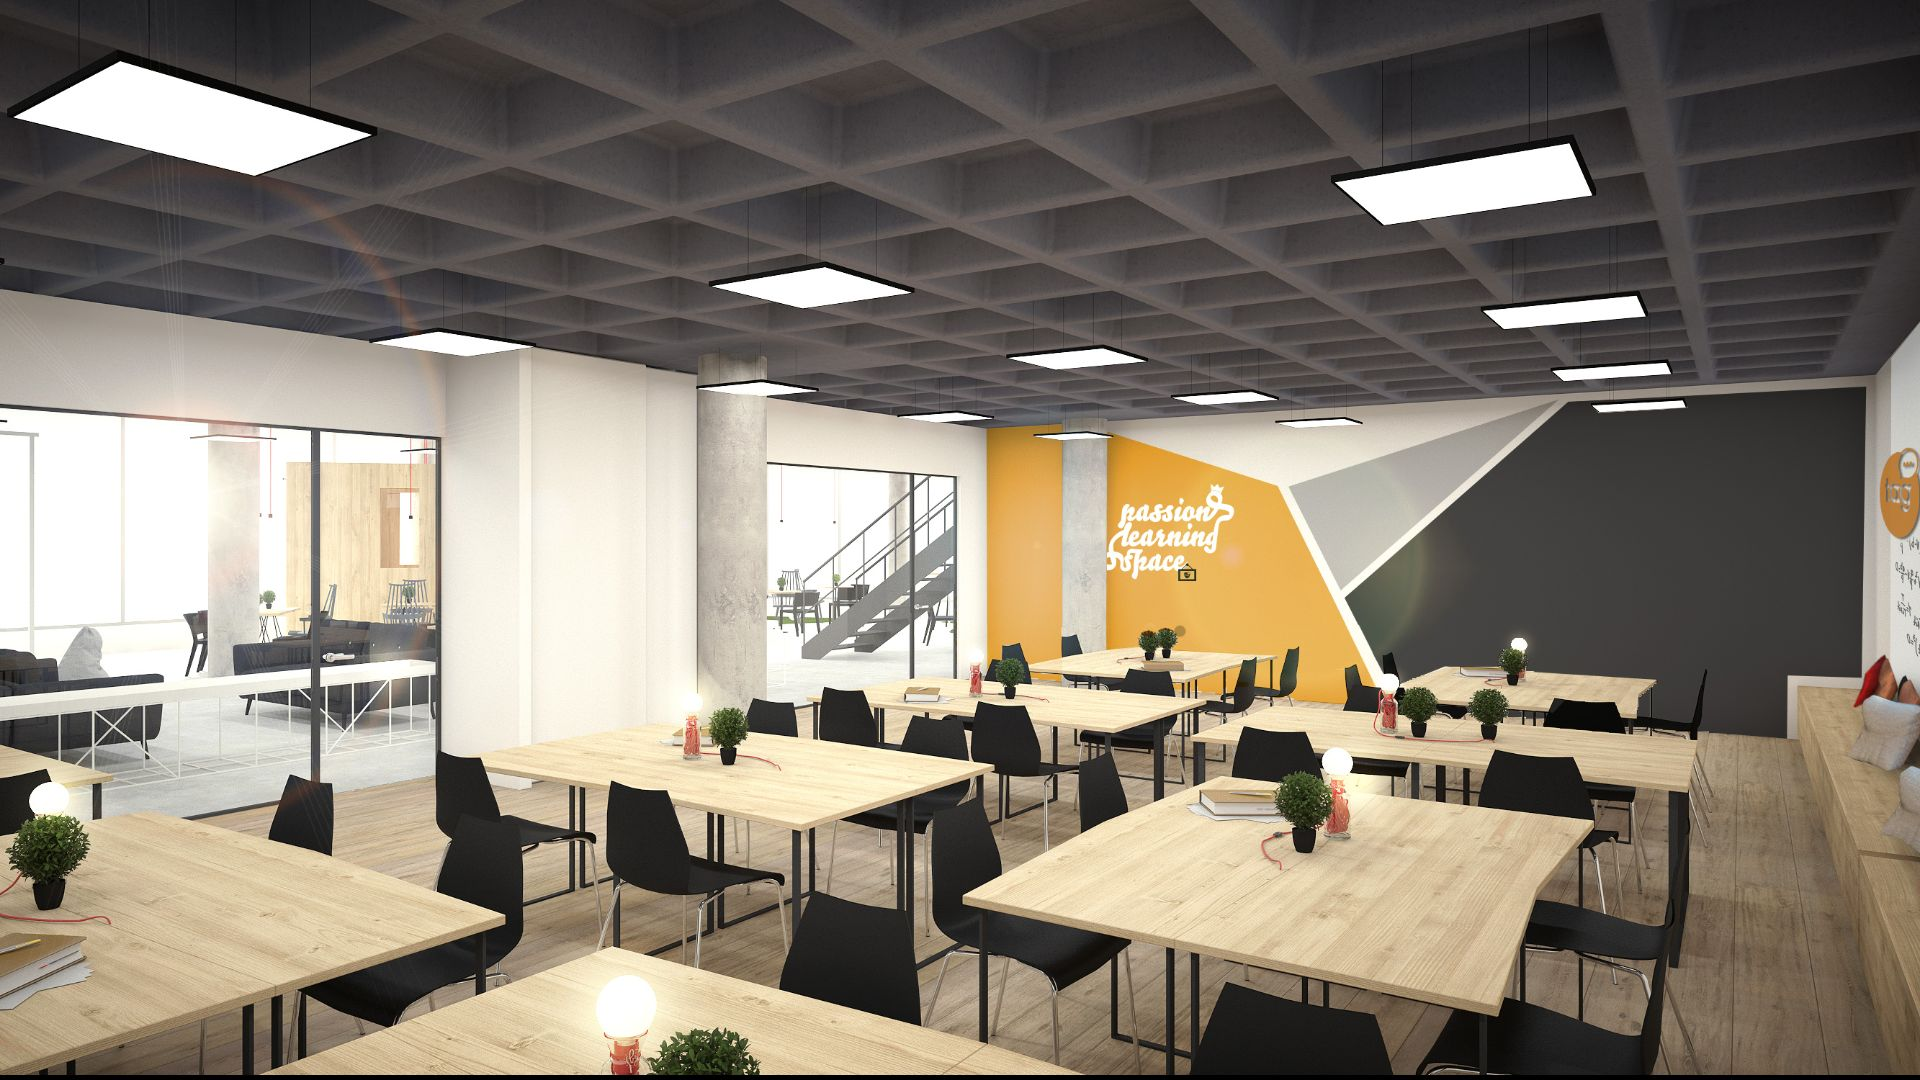 Picture of Workshop Rooms 1 & 2, a meeting room in the undefined undefined